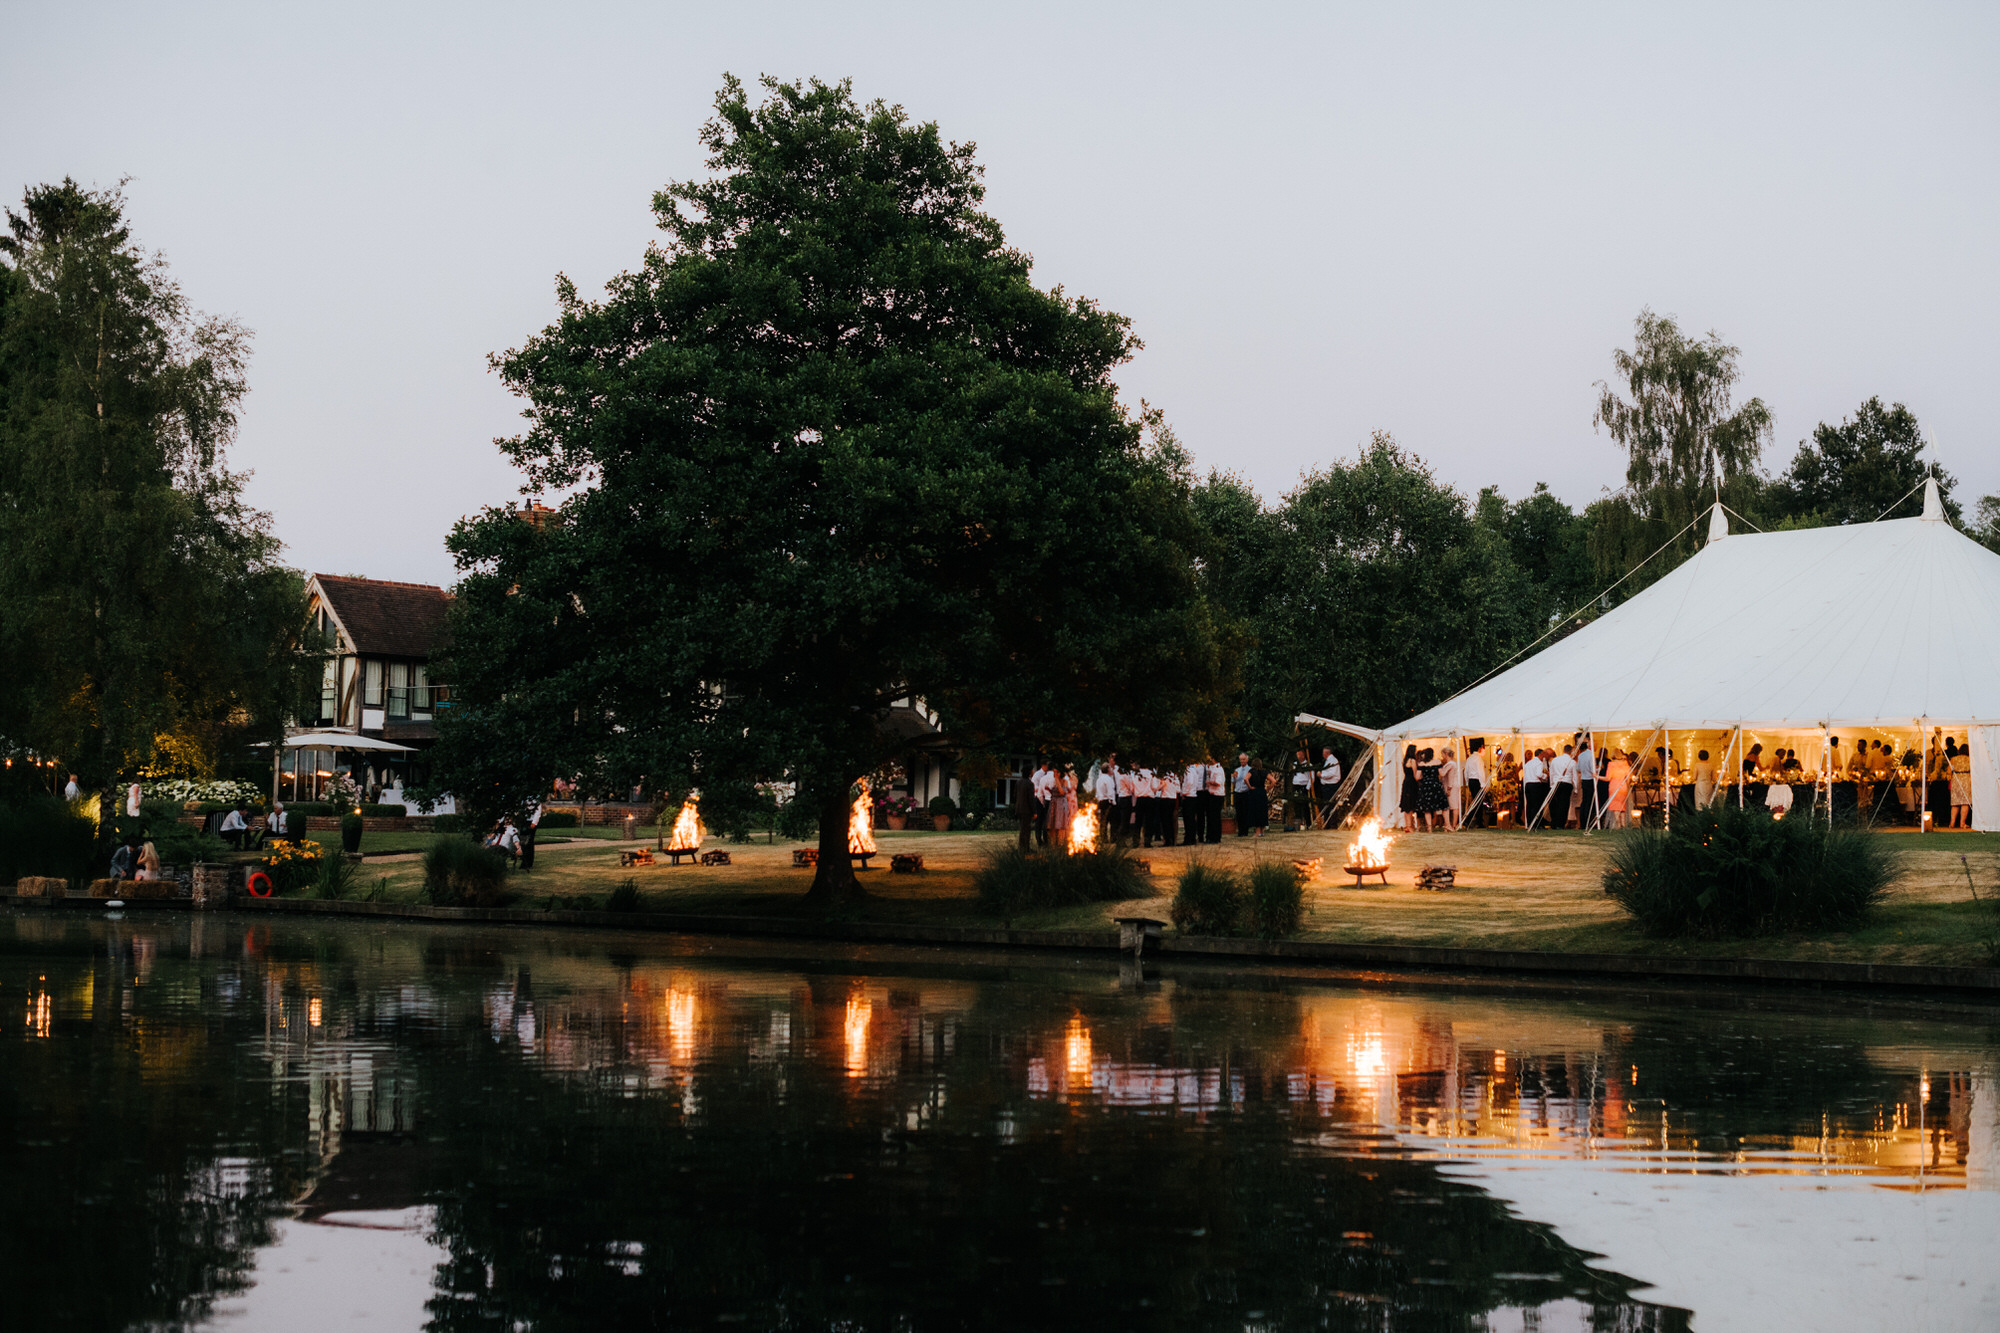 Beautiful marquee in the evening by lake side and fire pits